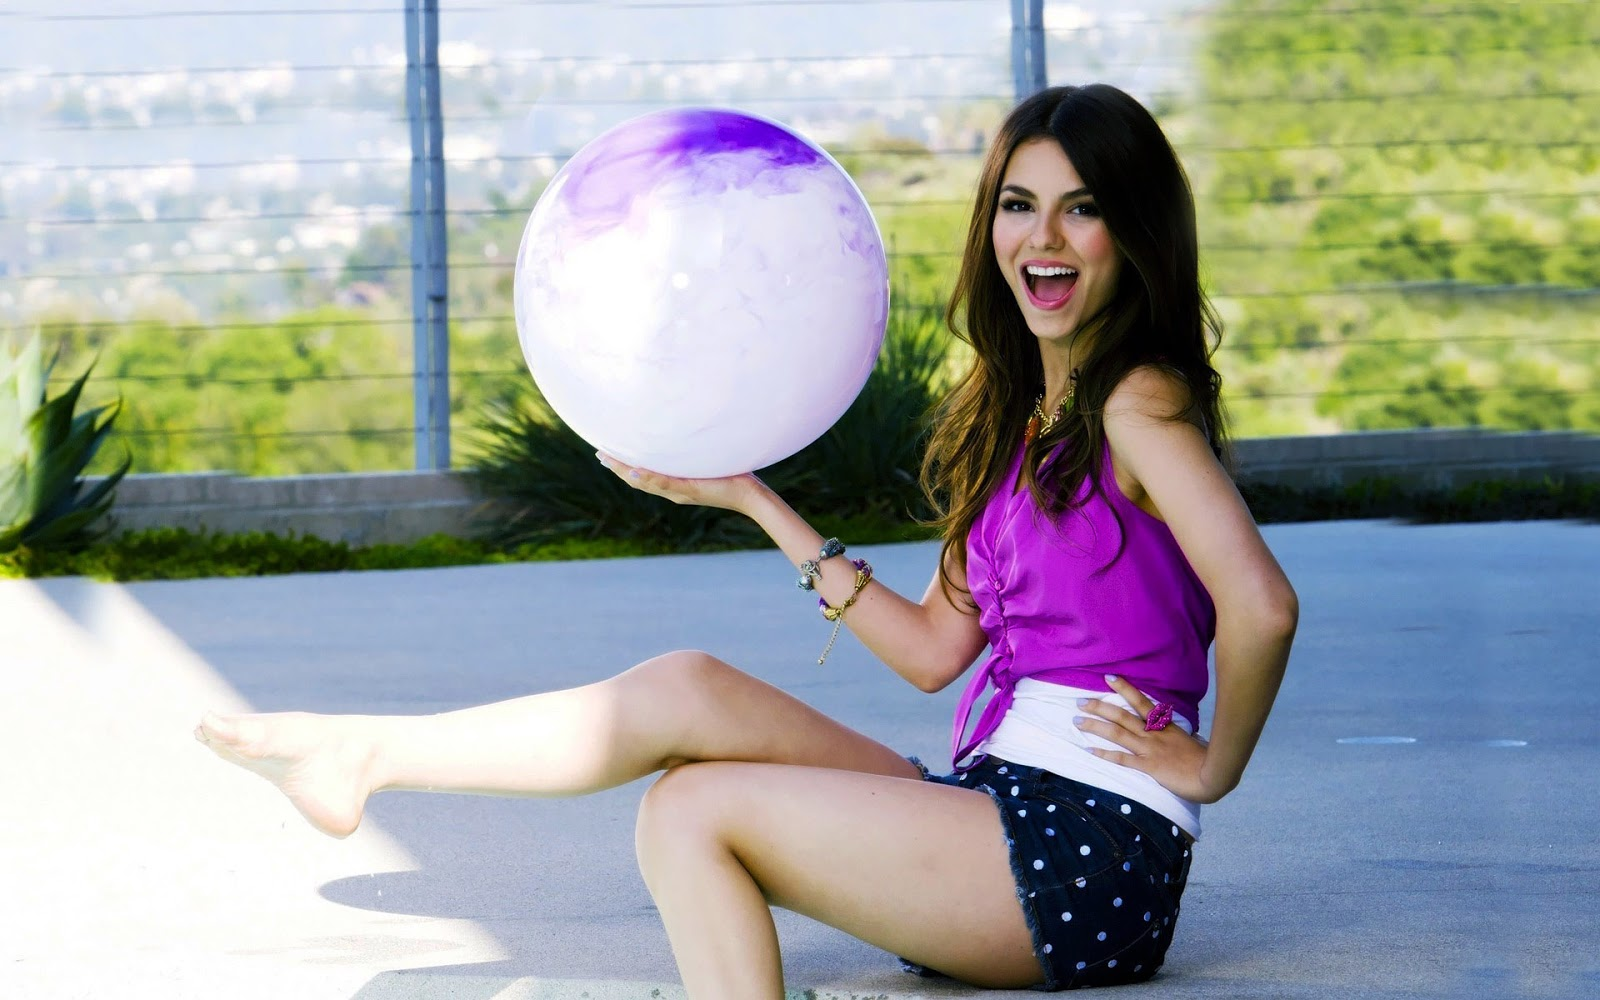 Victoria Justice Hd Wallpapers Free Download 1080P Best -1637